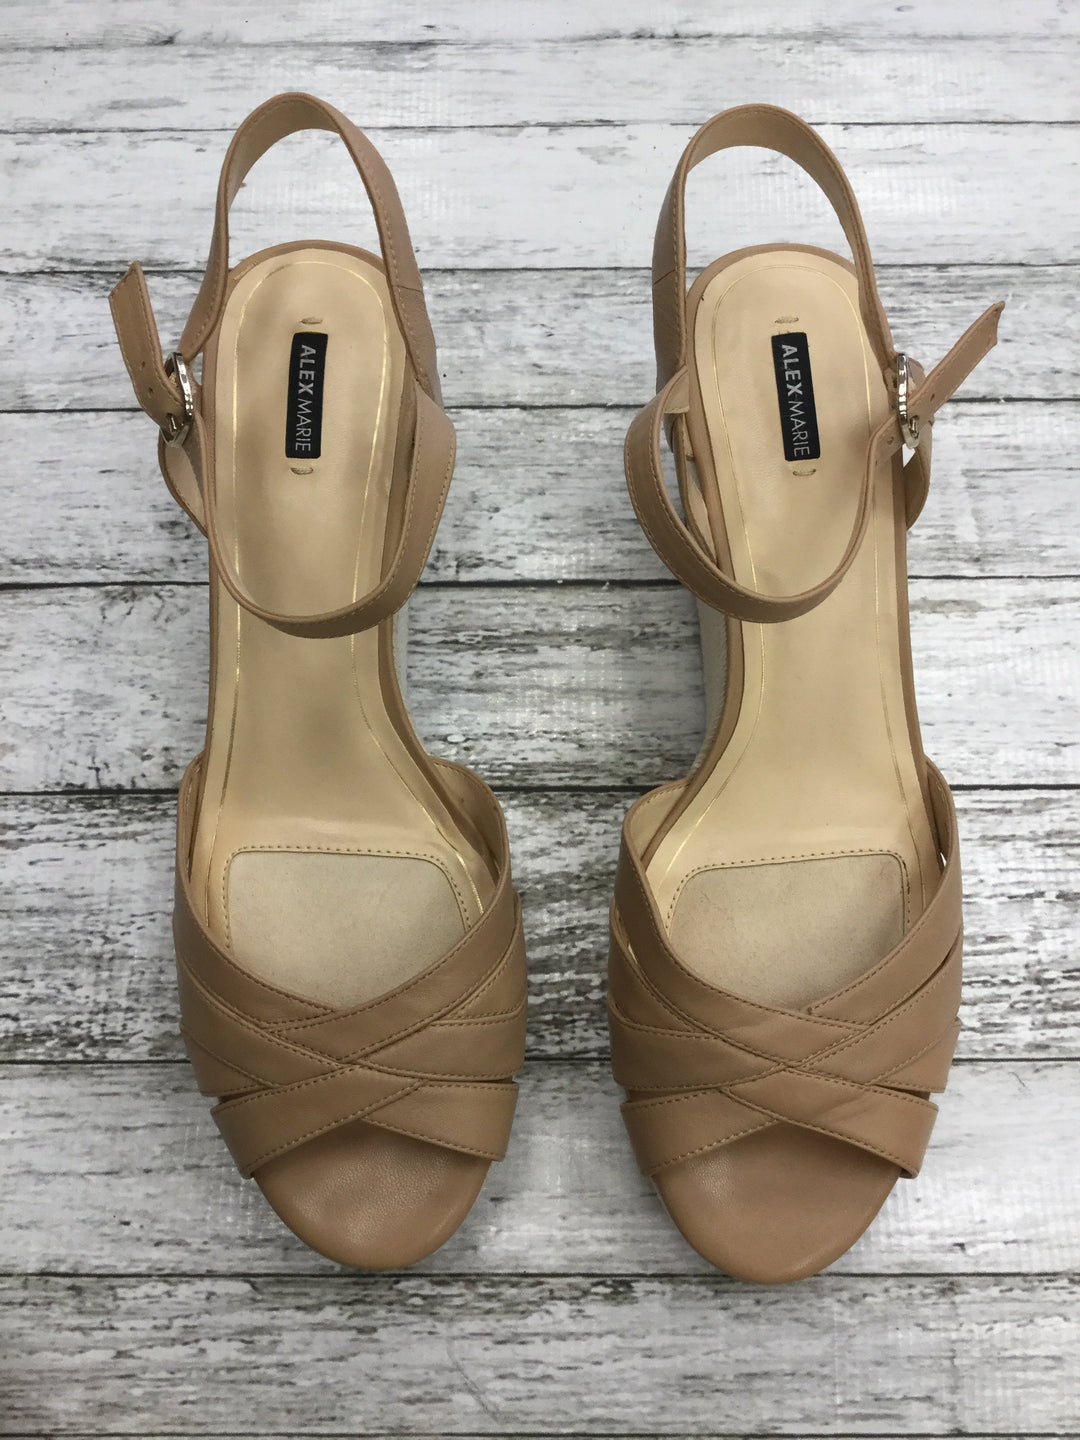 Primary Photo - brand: alex marie , style: sandals high , color: nude , size: 12 , other info: new! , sku: 125-3916-55883